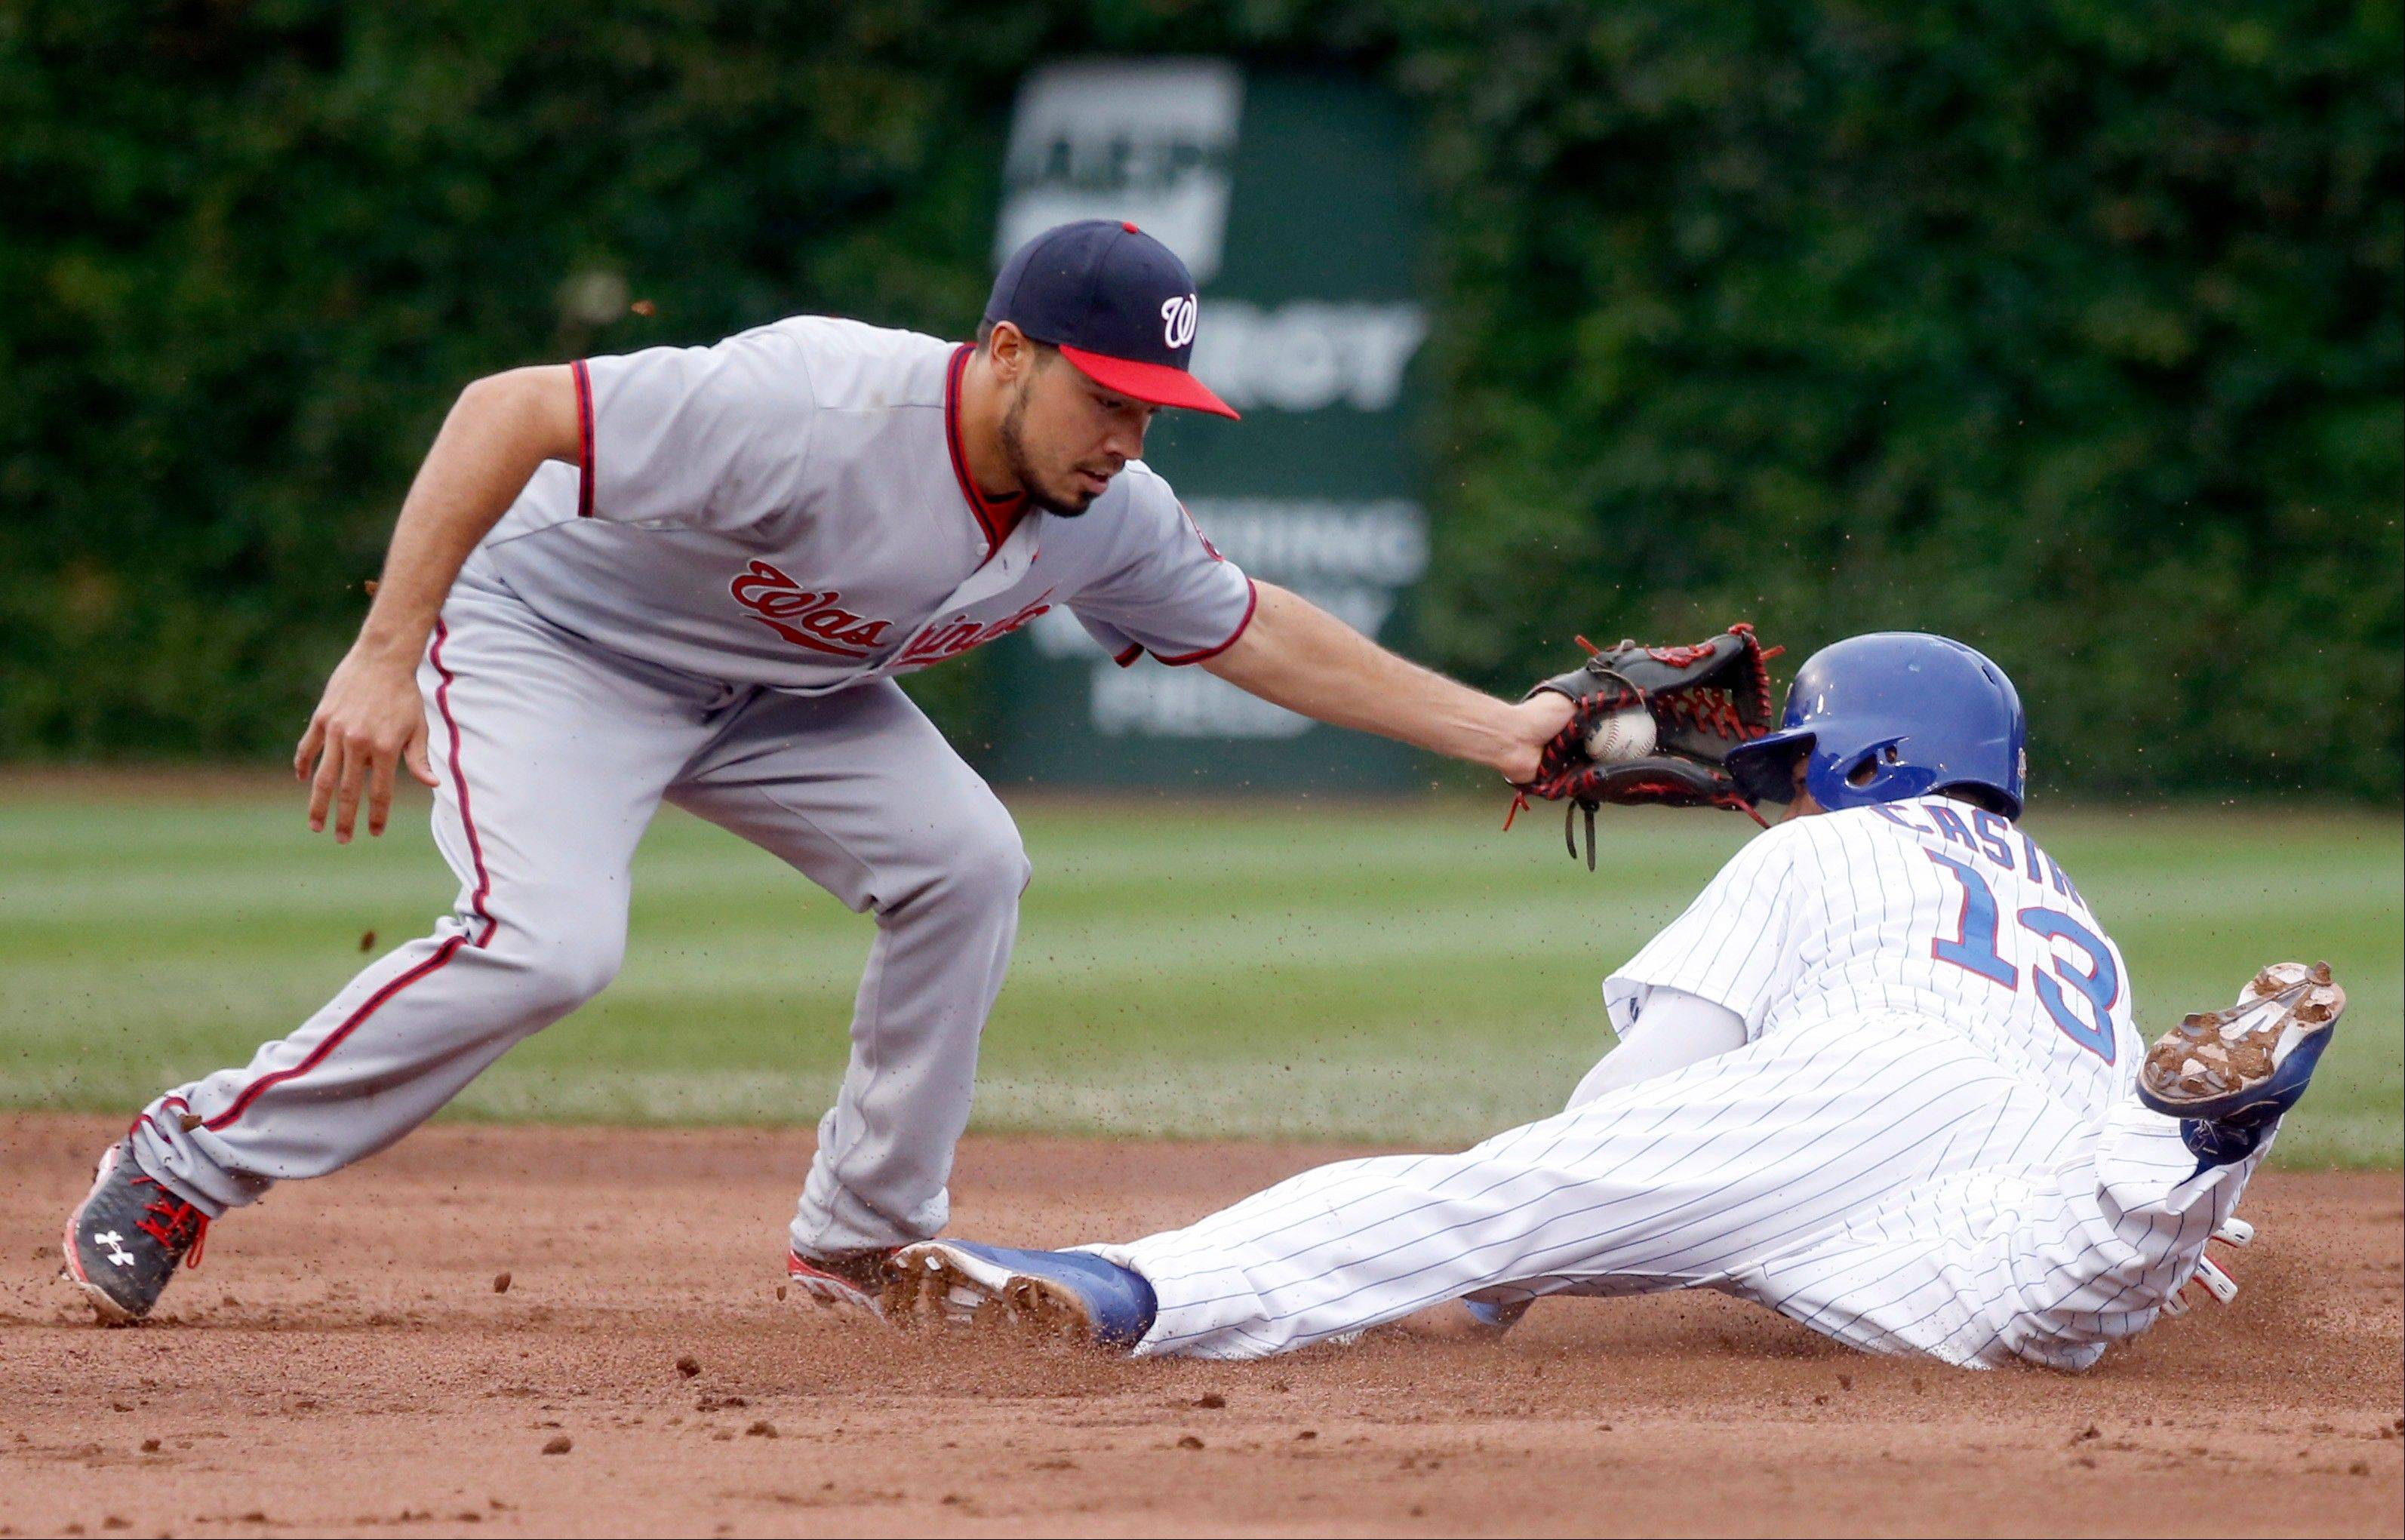 Washington Nationals second baseman Anthony Rendon, left, catches Chicago Cubs' Starlin Castro trying to steal second off a throw by catcher Wilson Ramos during the third inning of a baseball game on Thursday, Aug. 22, 2013, in Chicago.